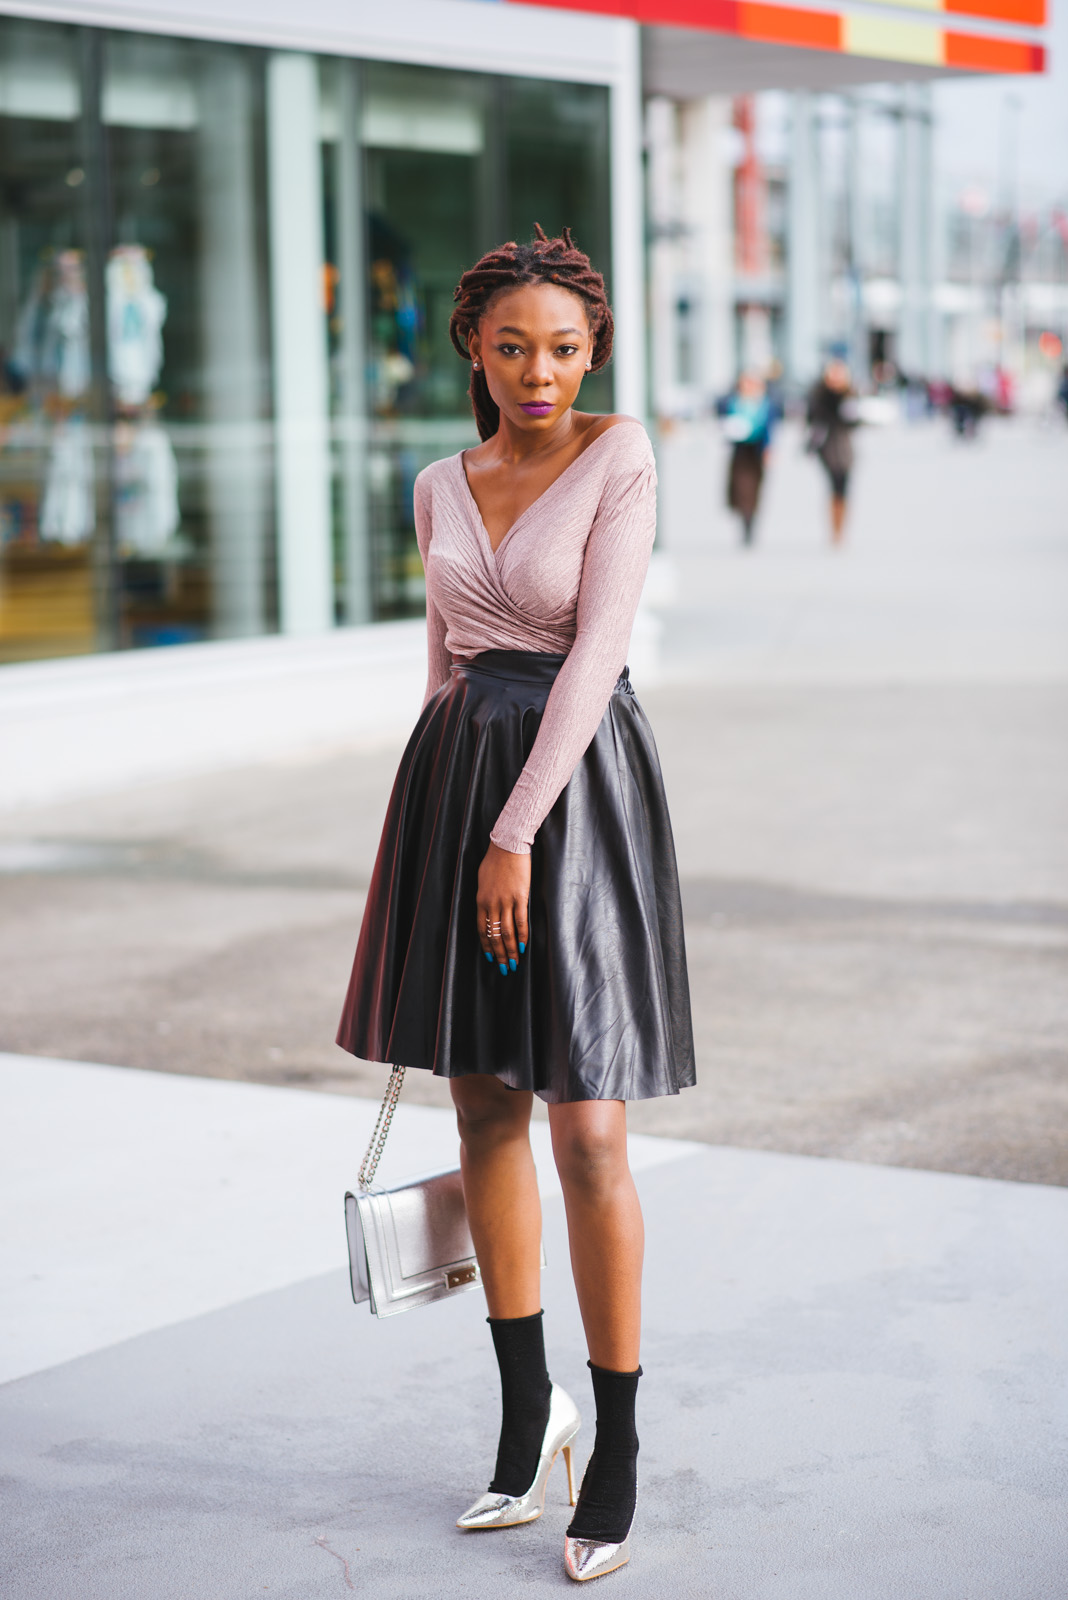 Leather outfits, skirts, pastels